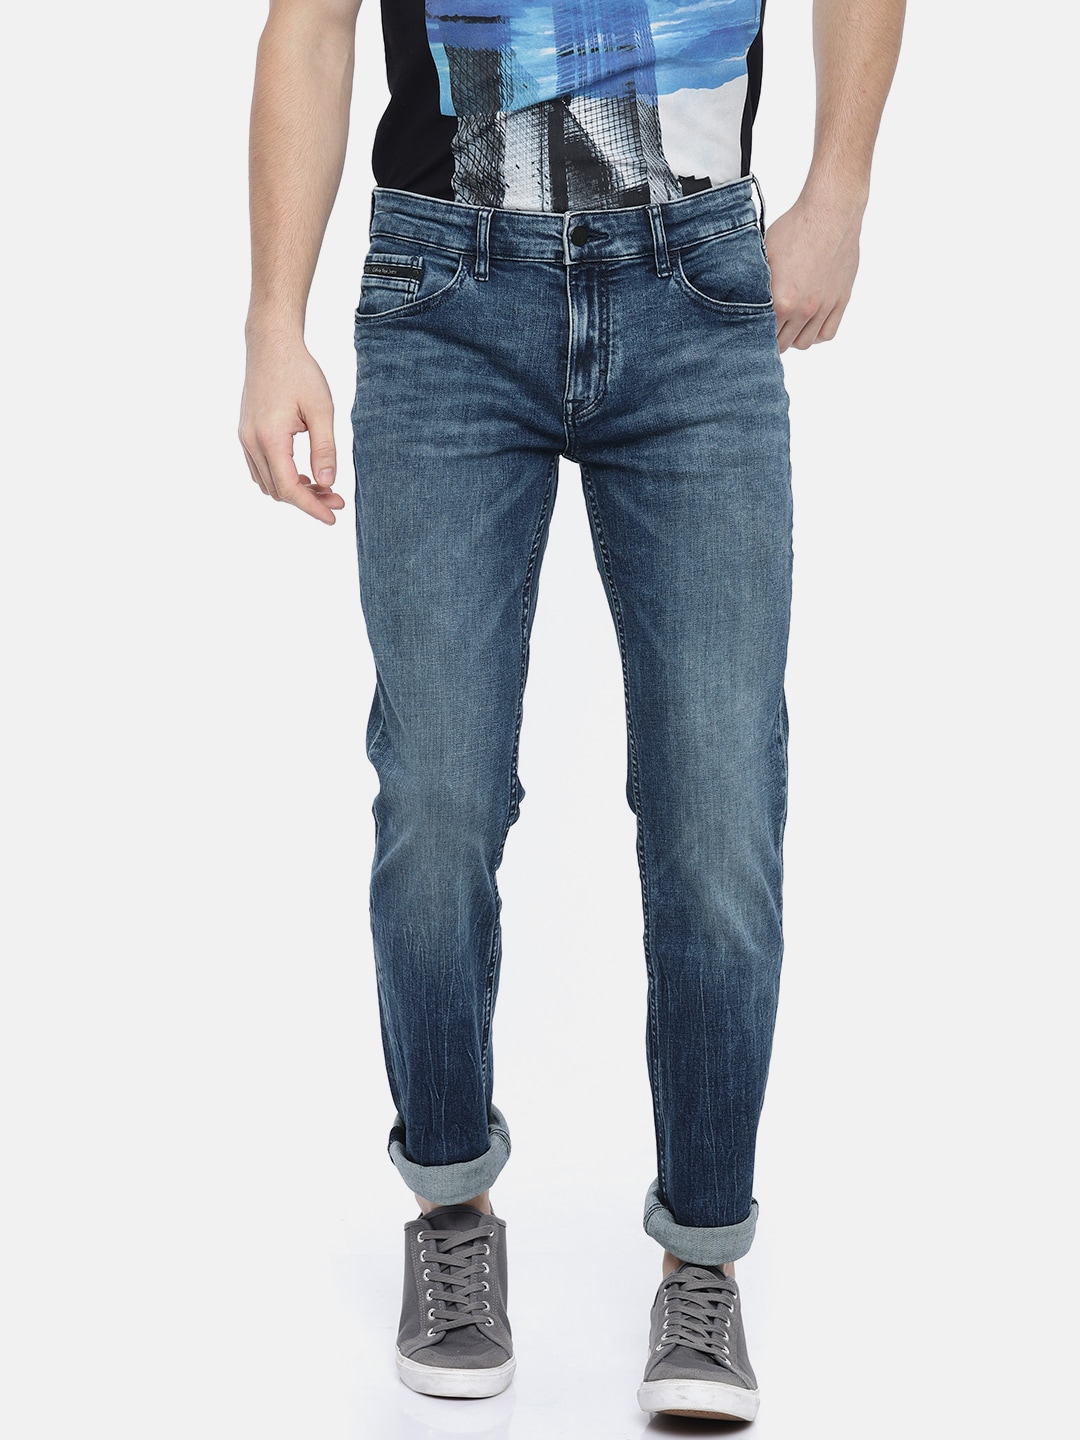 bc97a842 Jeans - Buy Jeans for Men, Women & Kids Online in India | Myntra